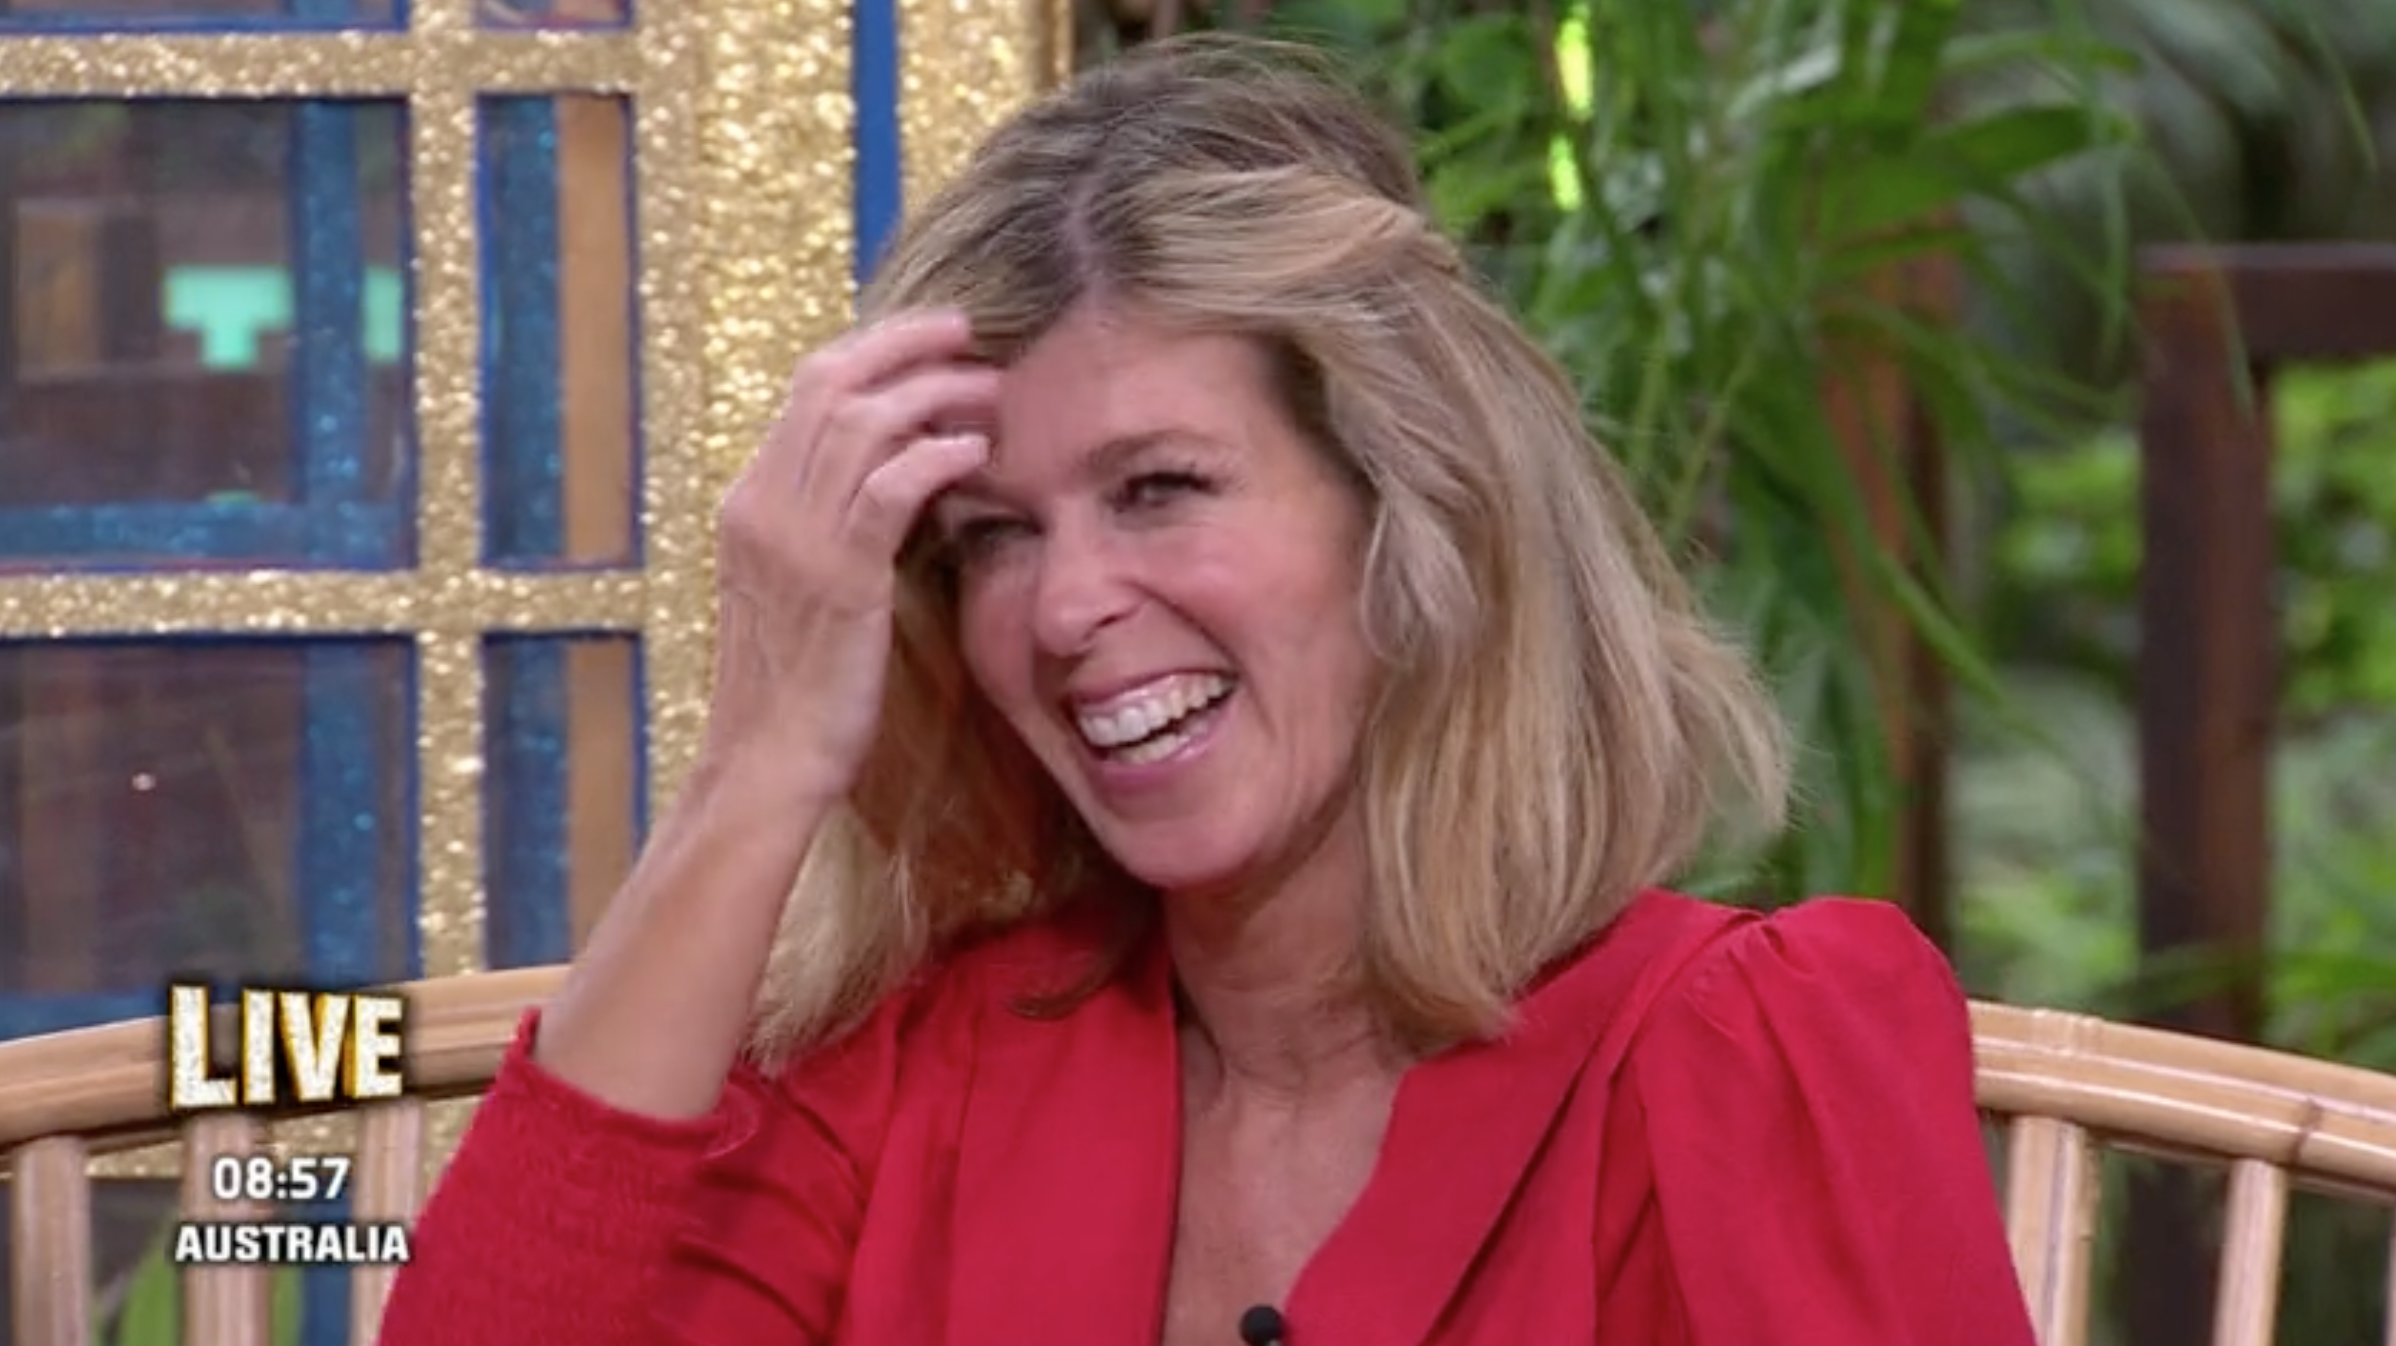 Kate Garraway reveals her 'shock' after losing a stone in just three weeks in the I'm A Celebrity jungle